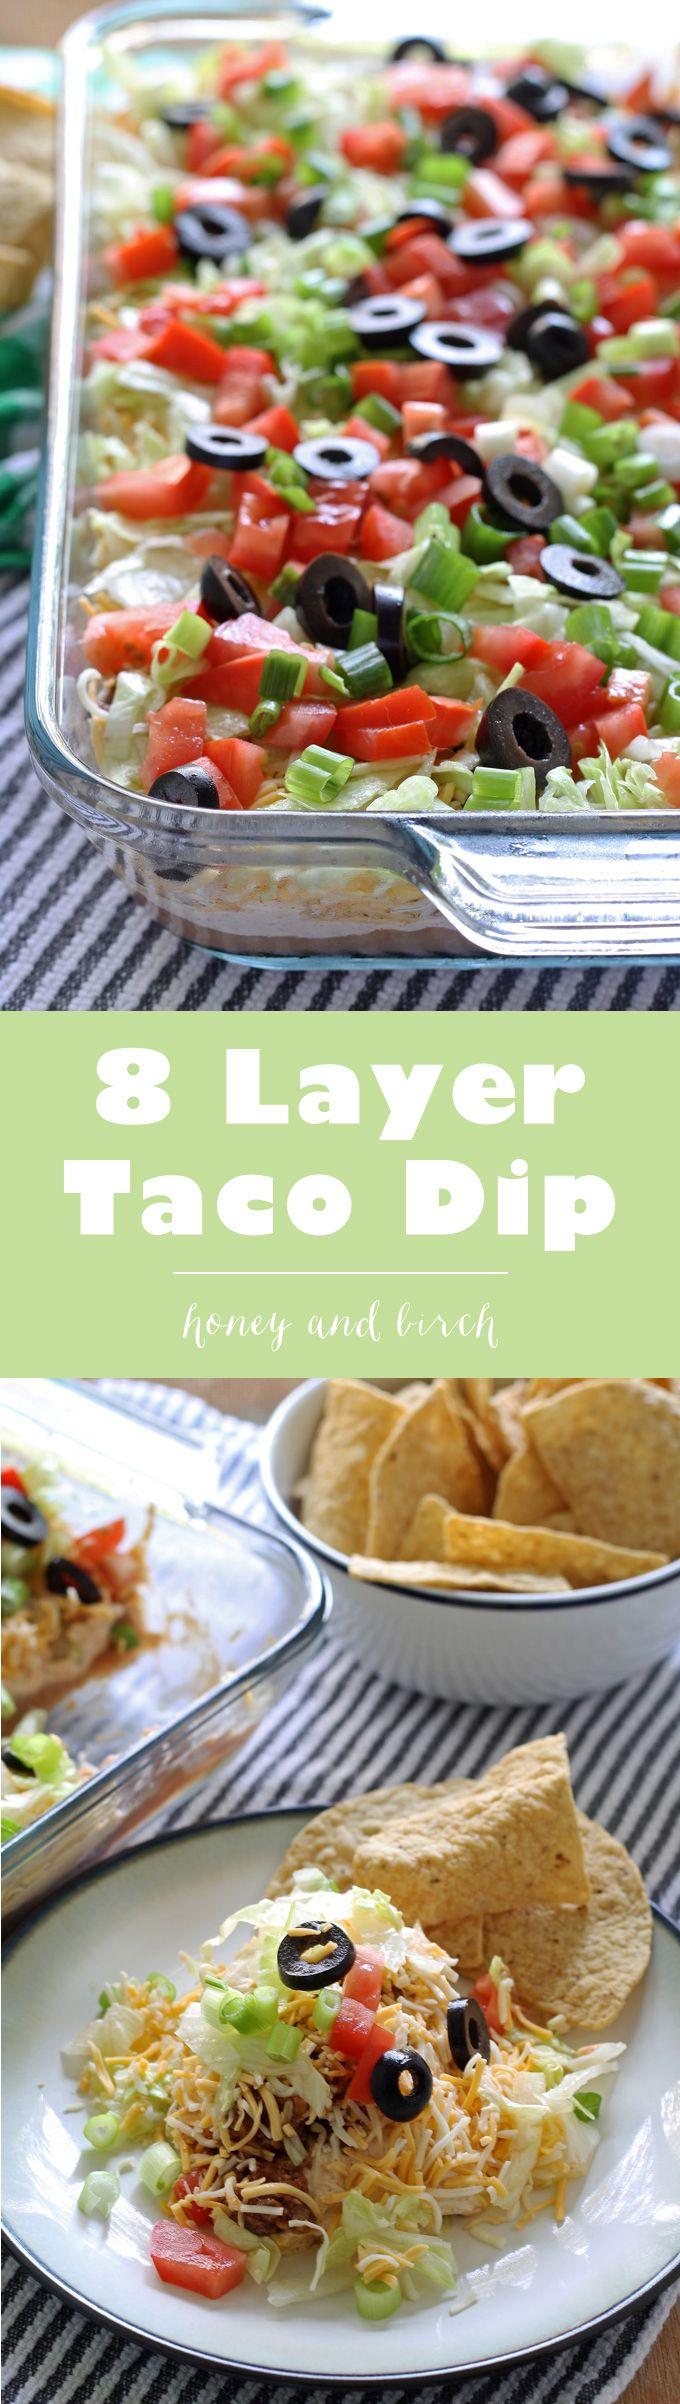 Go big with this 8 layer taco dip recipe – it is the perfect appetizer for large crowds. It's full of meat, cheese, veggies and more! | honeyandbirch.com | appetizer | taco | game day | football | ideas | for a crowd | party | food | tailgating | super bowl | easy | classic | best | dip | taco dip